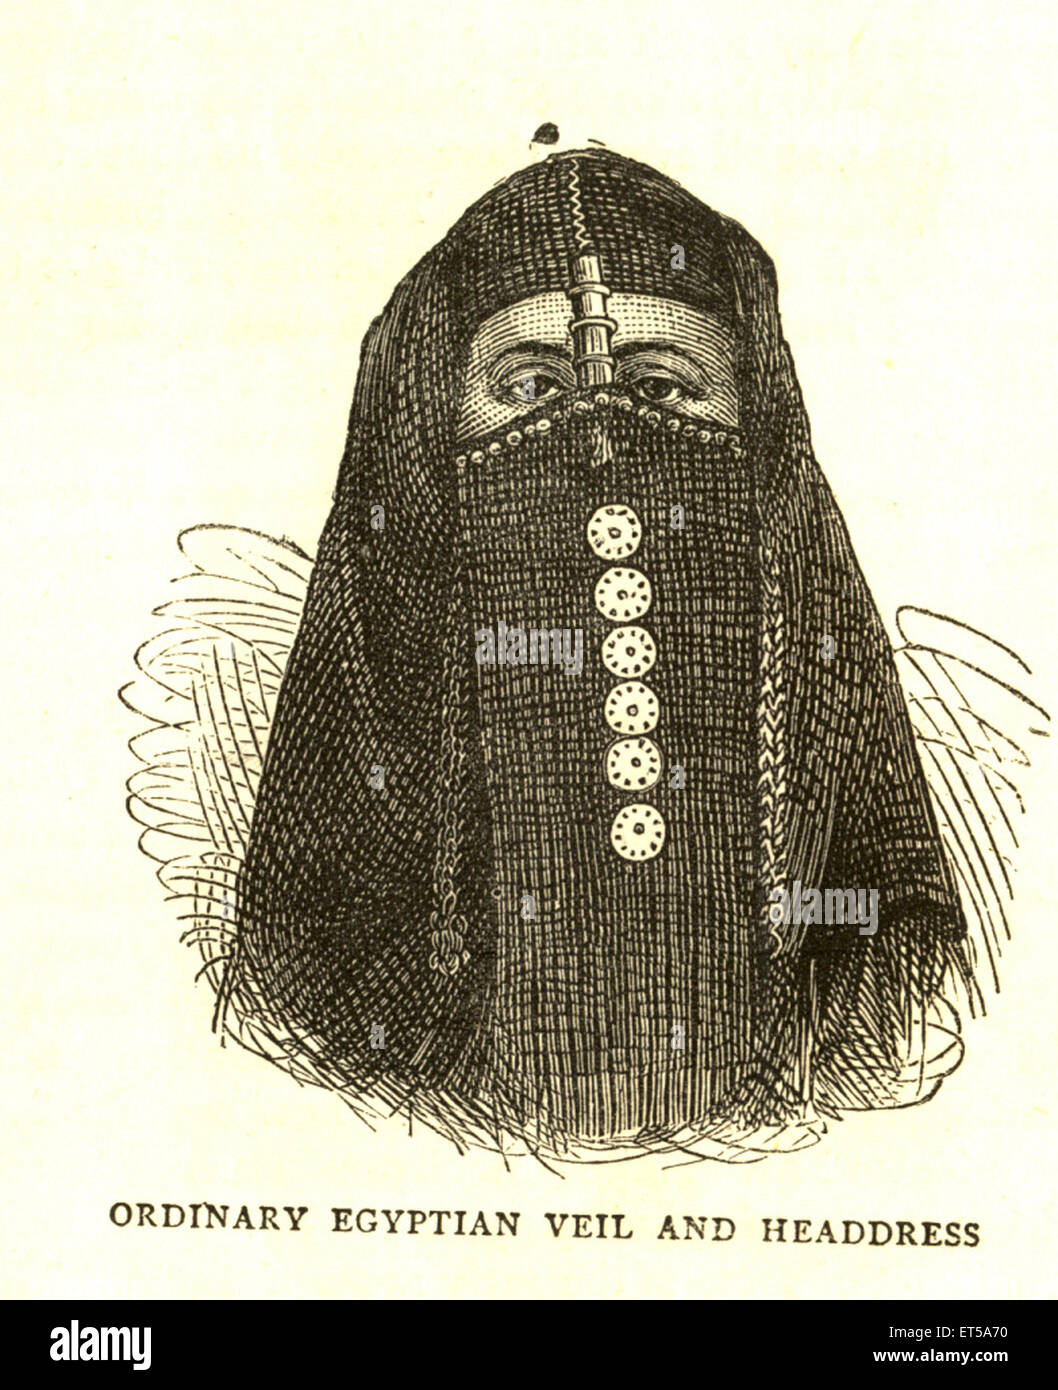 Lithographic portraits ordinary Egyptian veil and headdress - Stock Image